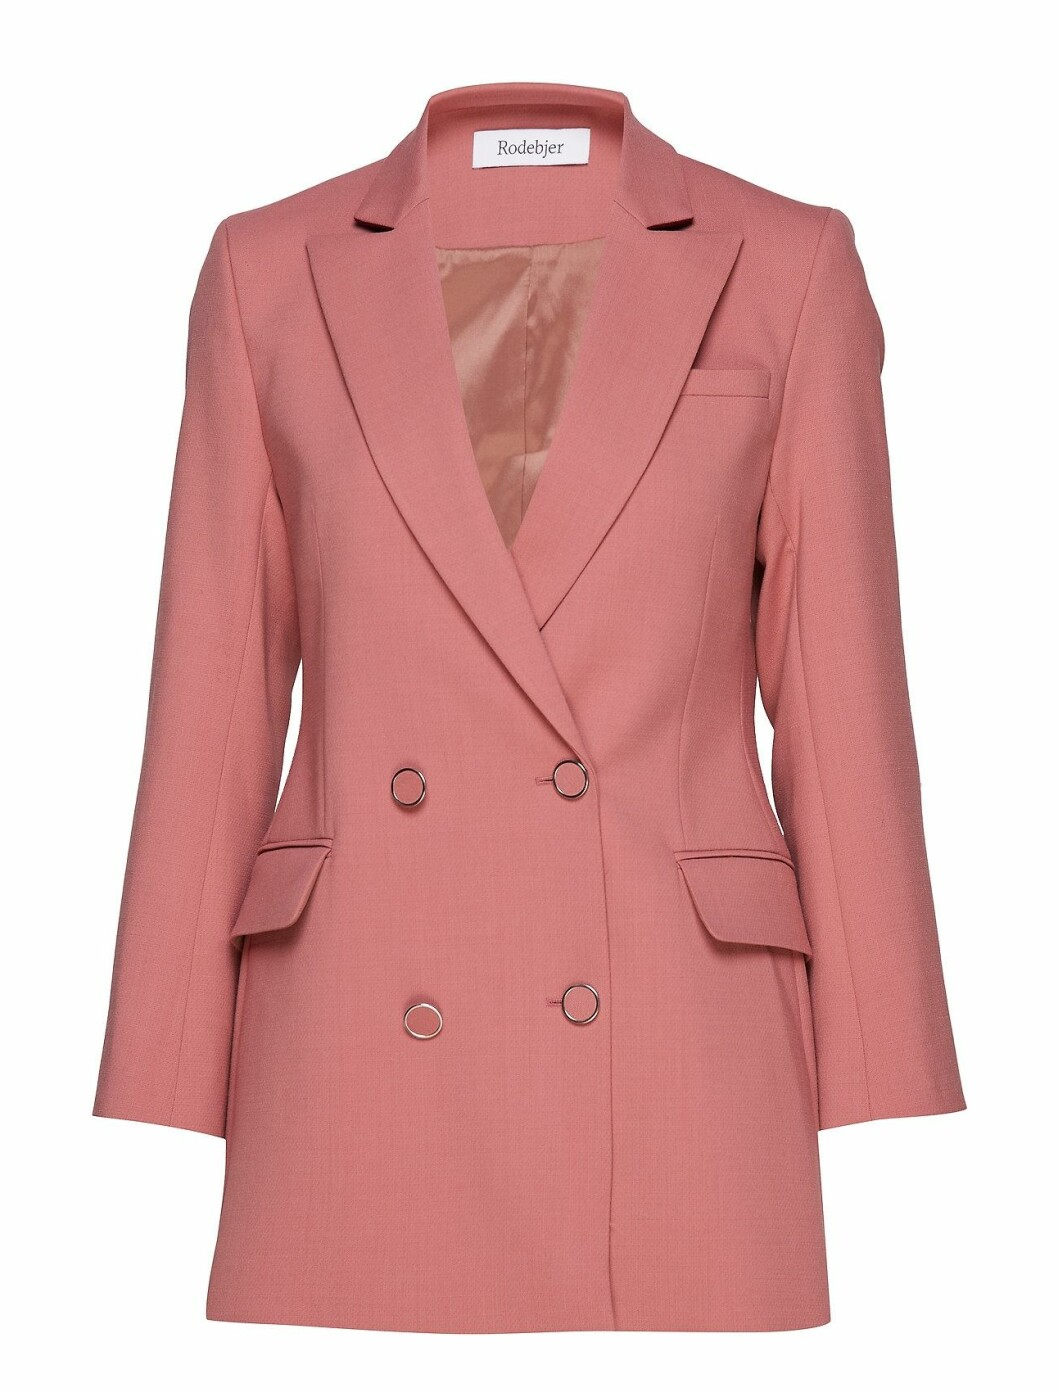 Blazer fra Rodebjer  4795,-  https://www.boozt.com/no/no/rodebjer/nera_18794687/18794692?navId=60743&group=search_brand&position=1000000